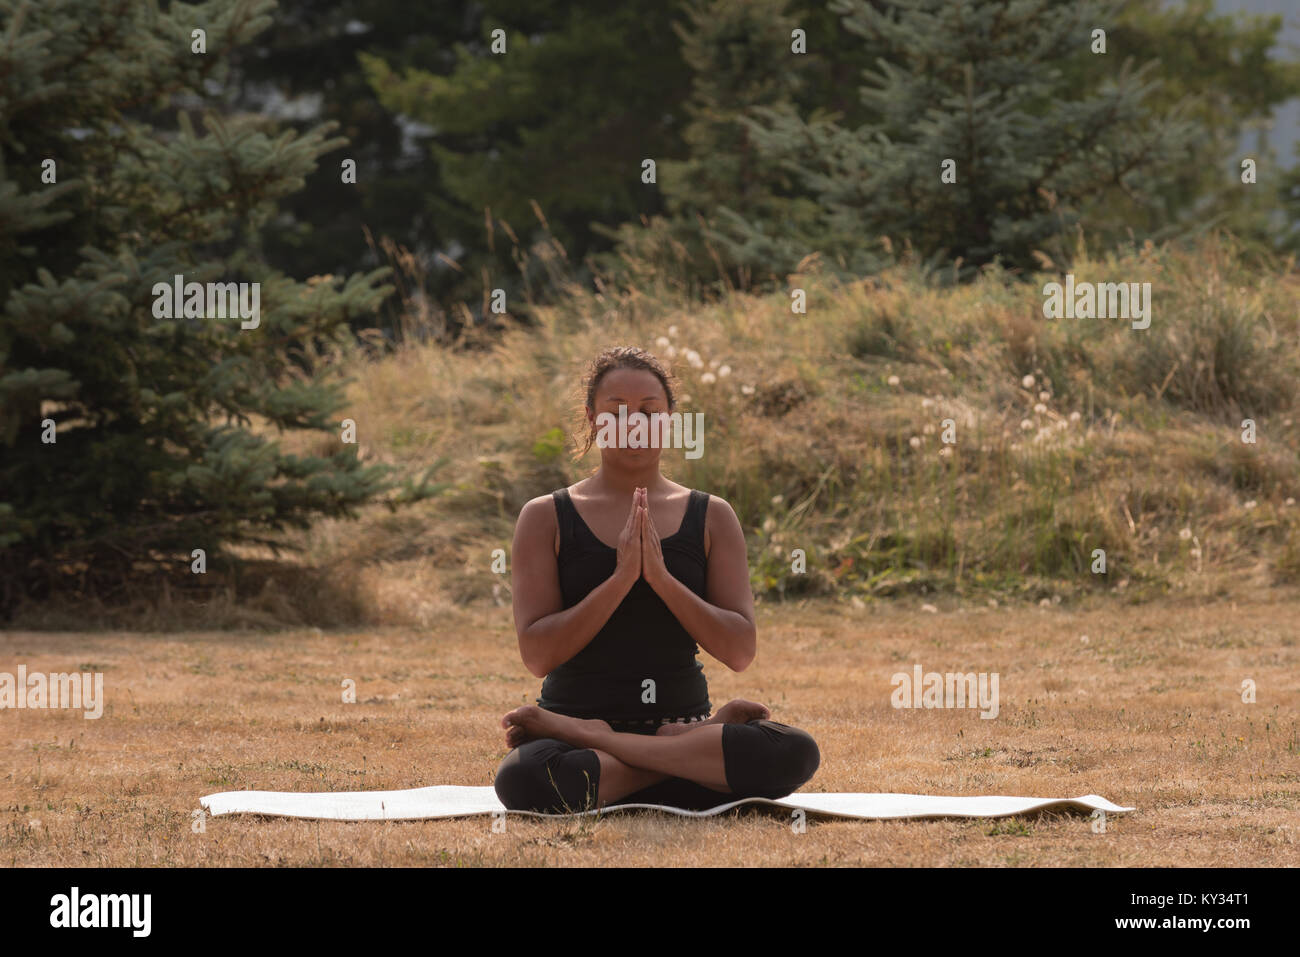 Fit woman sitting in meditating posture on an open ground - Stock Image